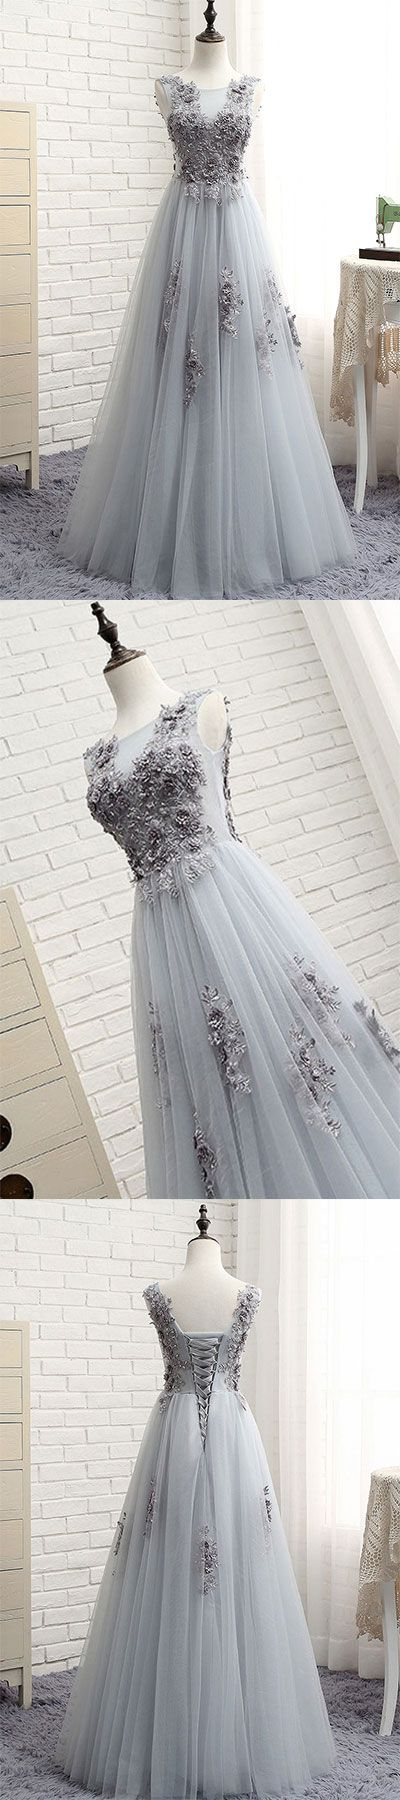 Gray round neck tulle lace applique long prom dress, gray evening dress, gray tulle bridesmaid dress